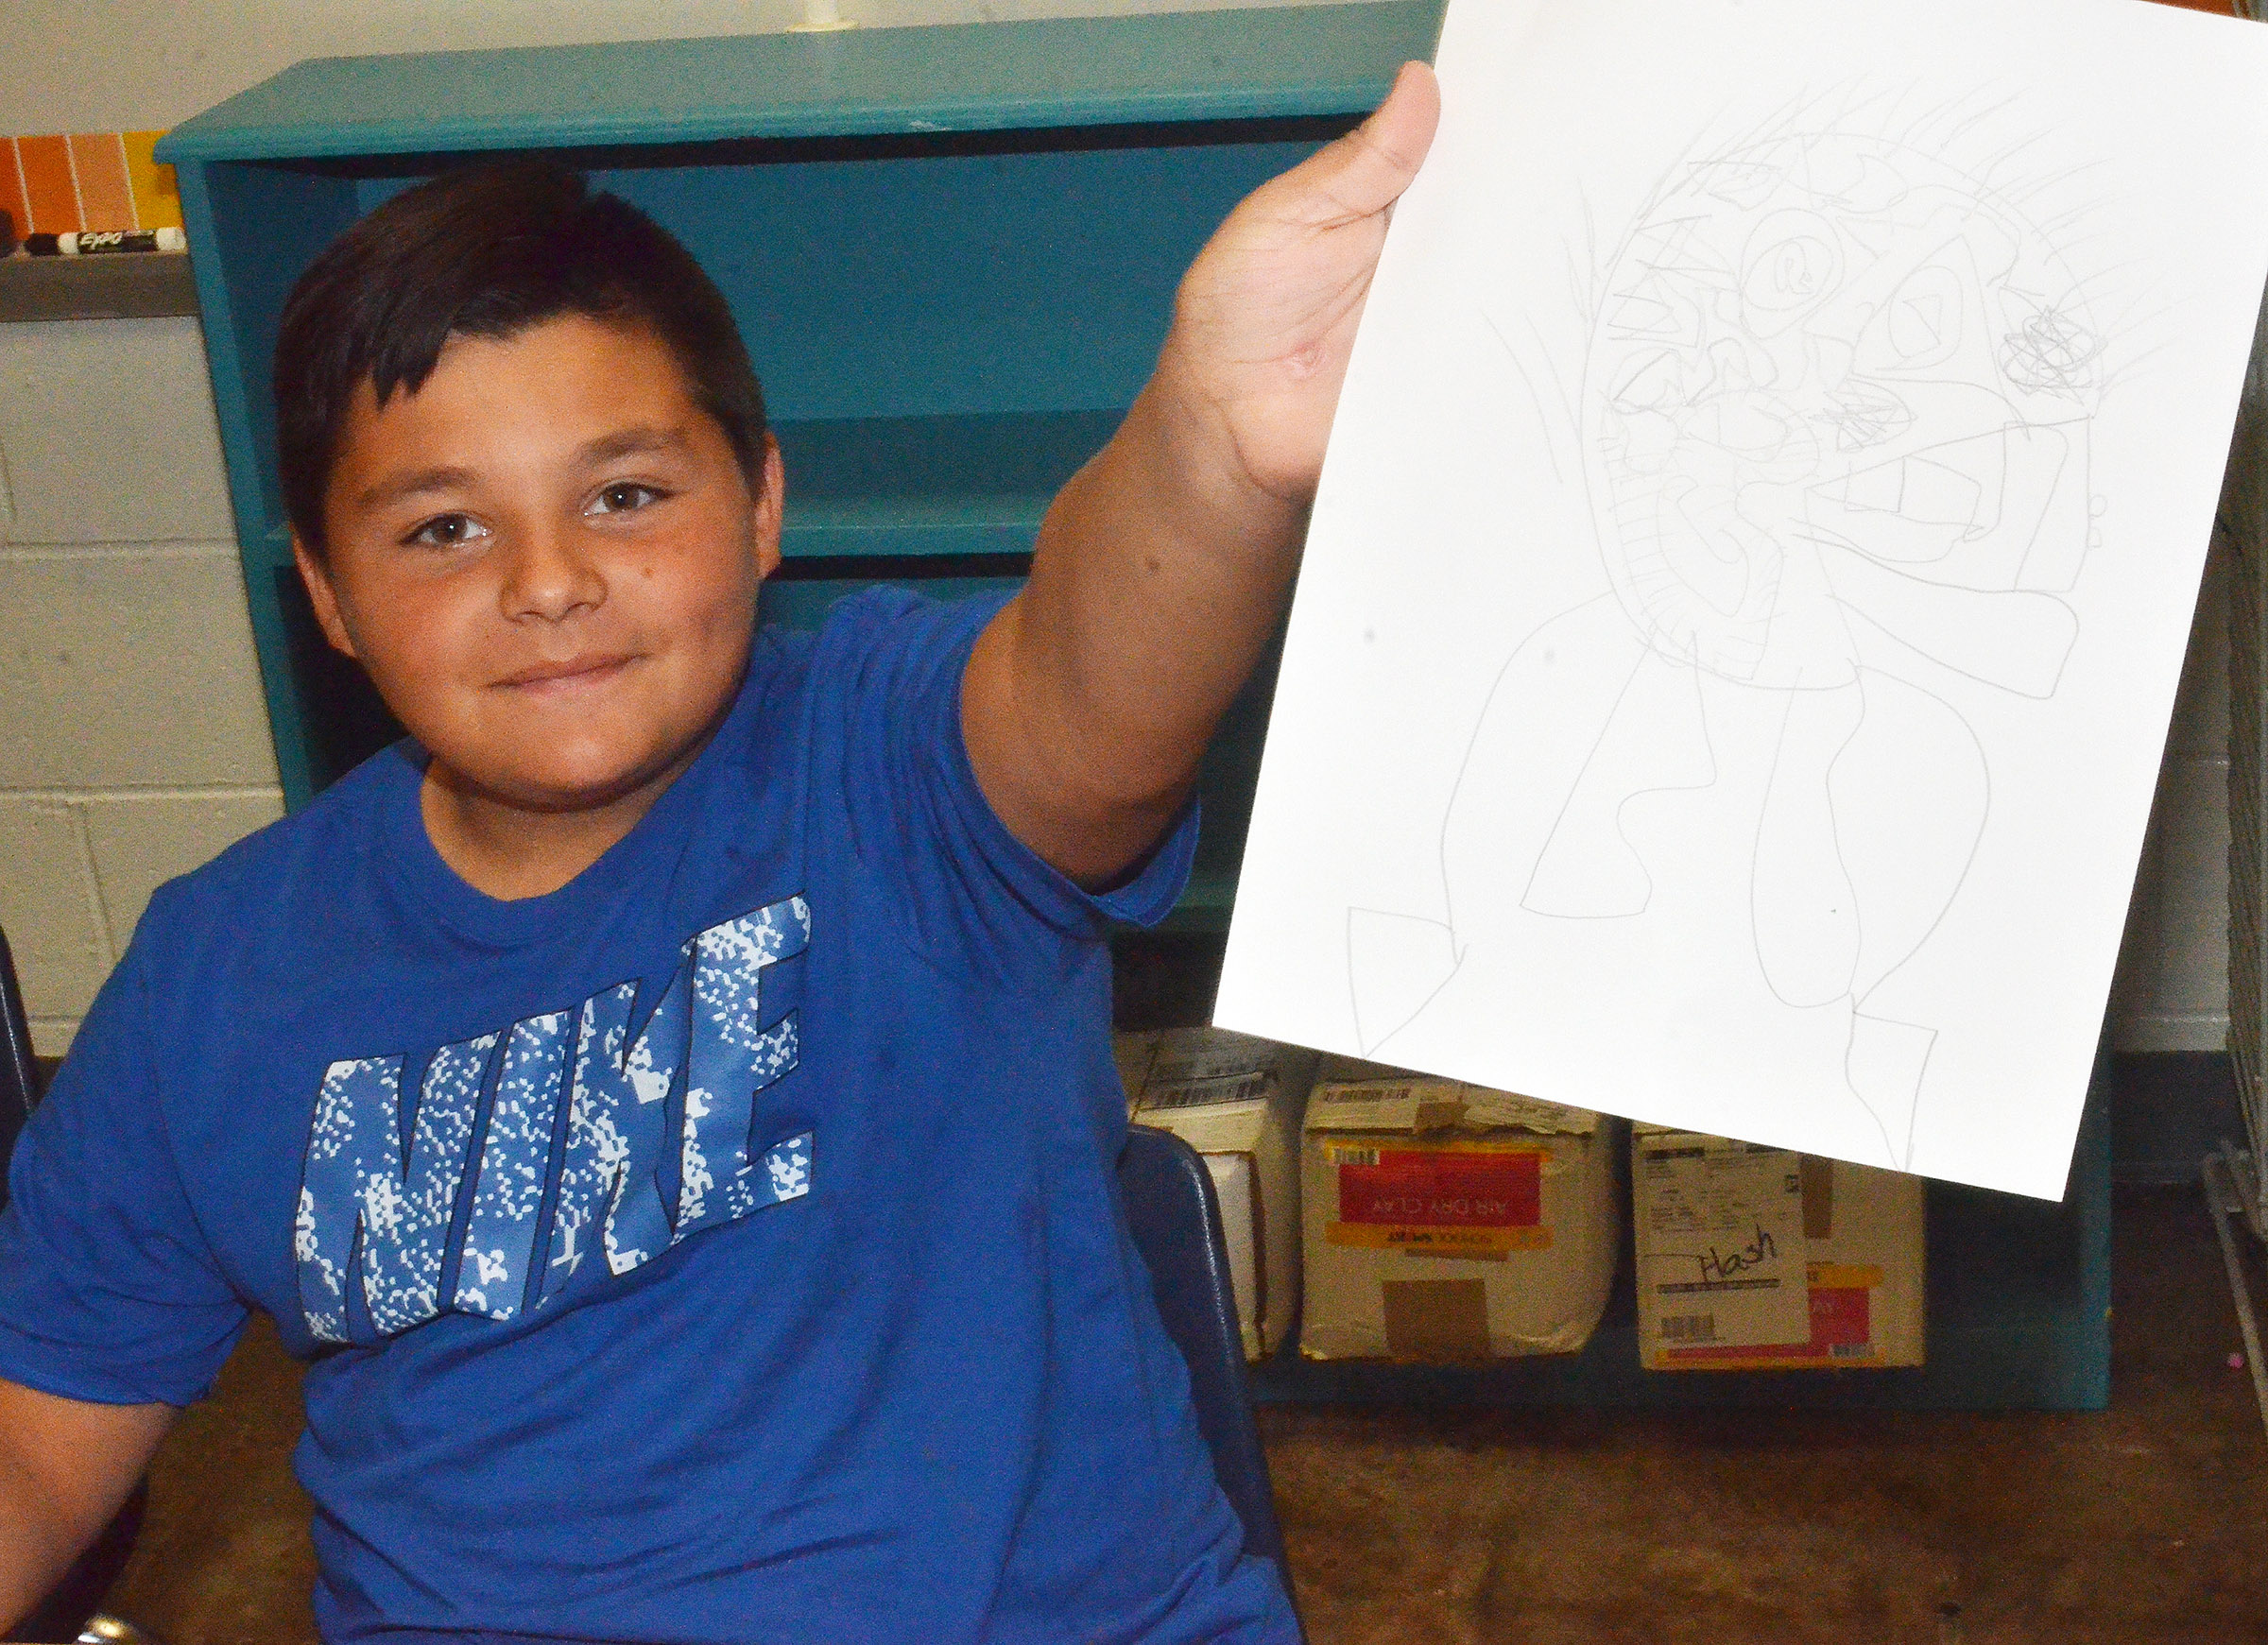 CES fourth-grader Brayden Paiz holds his finished distorted self-portrait.